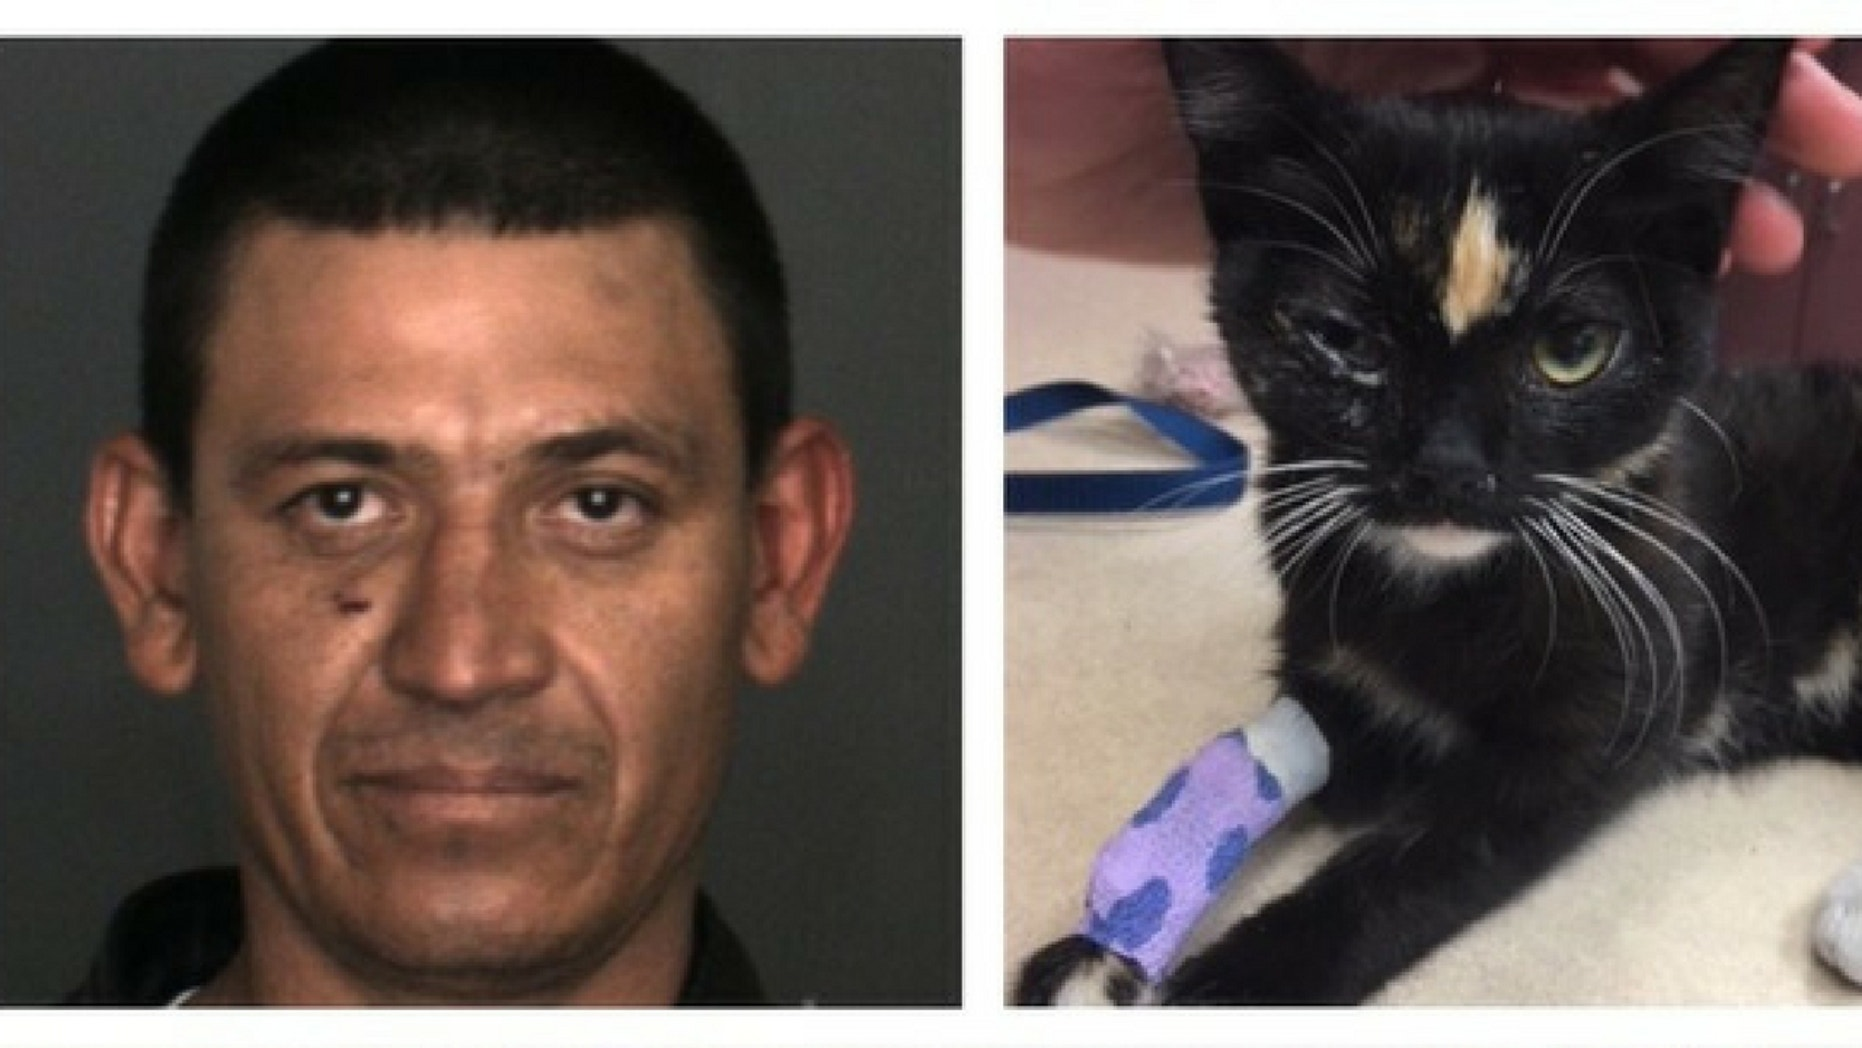 Lucio Lopez, 34, was arrested after allegedly throwing a kitten in a freezer and then off a balcony, police said.